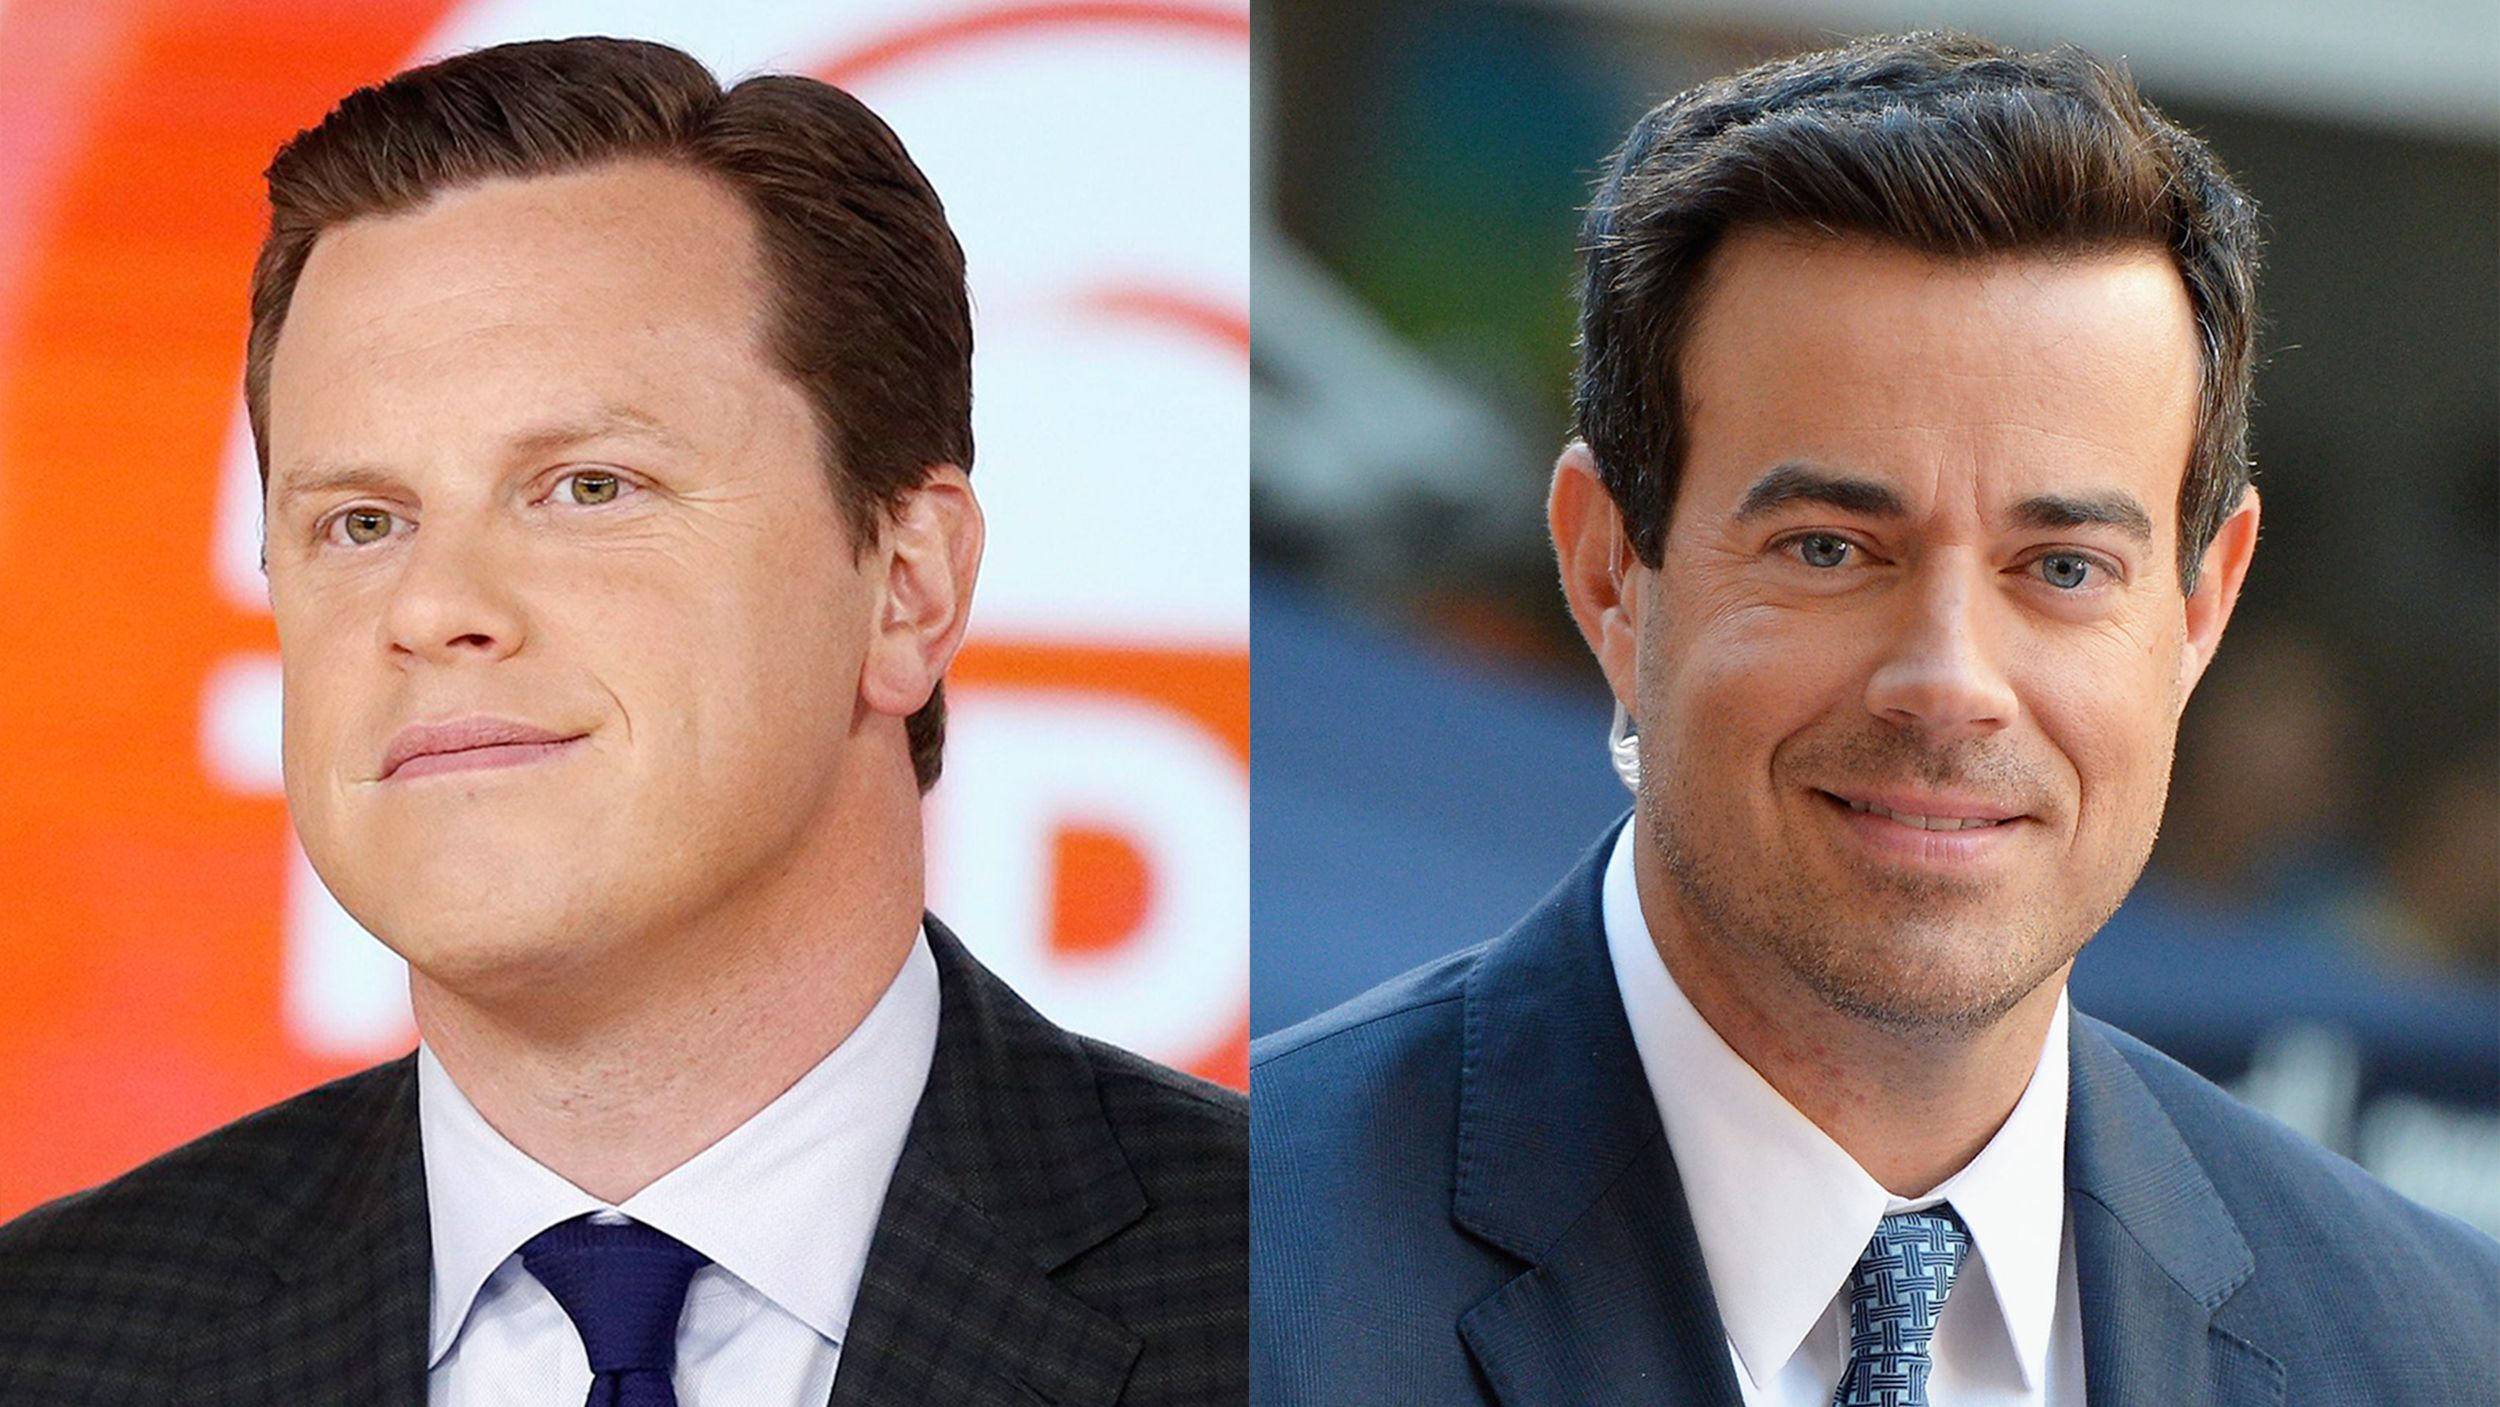 Willie Geist And Carson Daly To Get Family Jewels Checked On